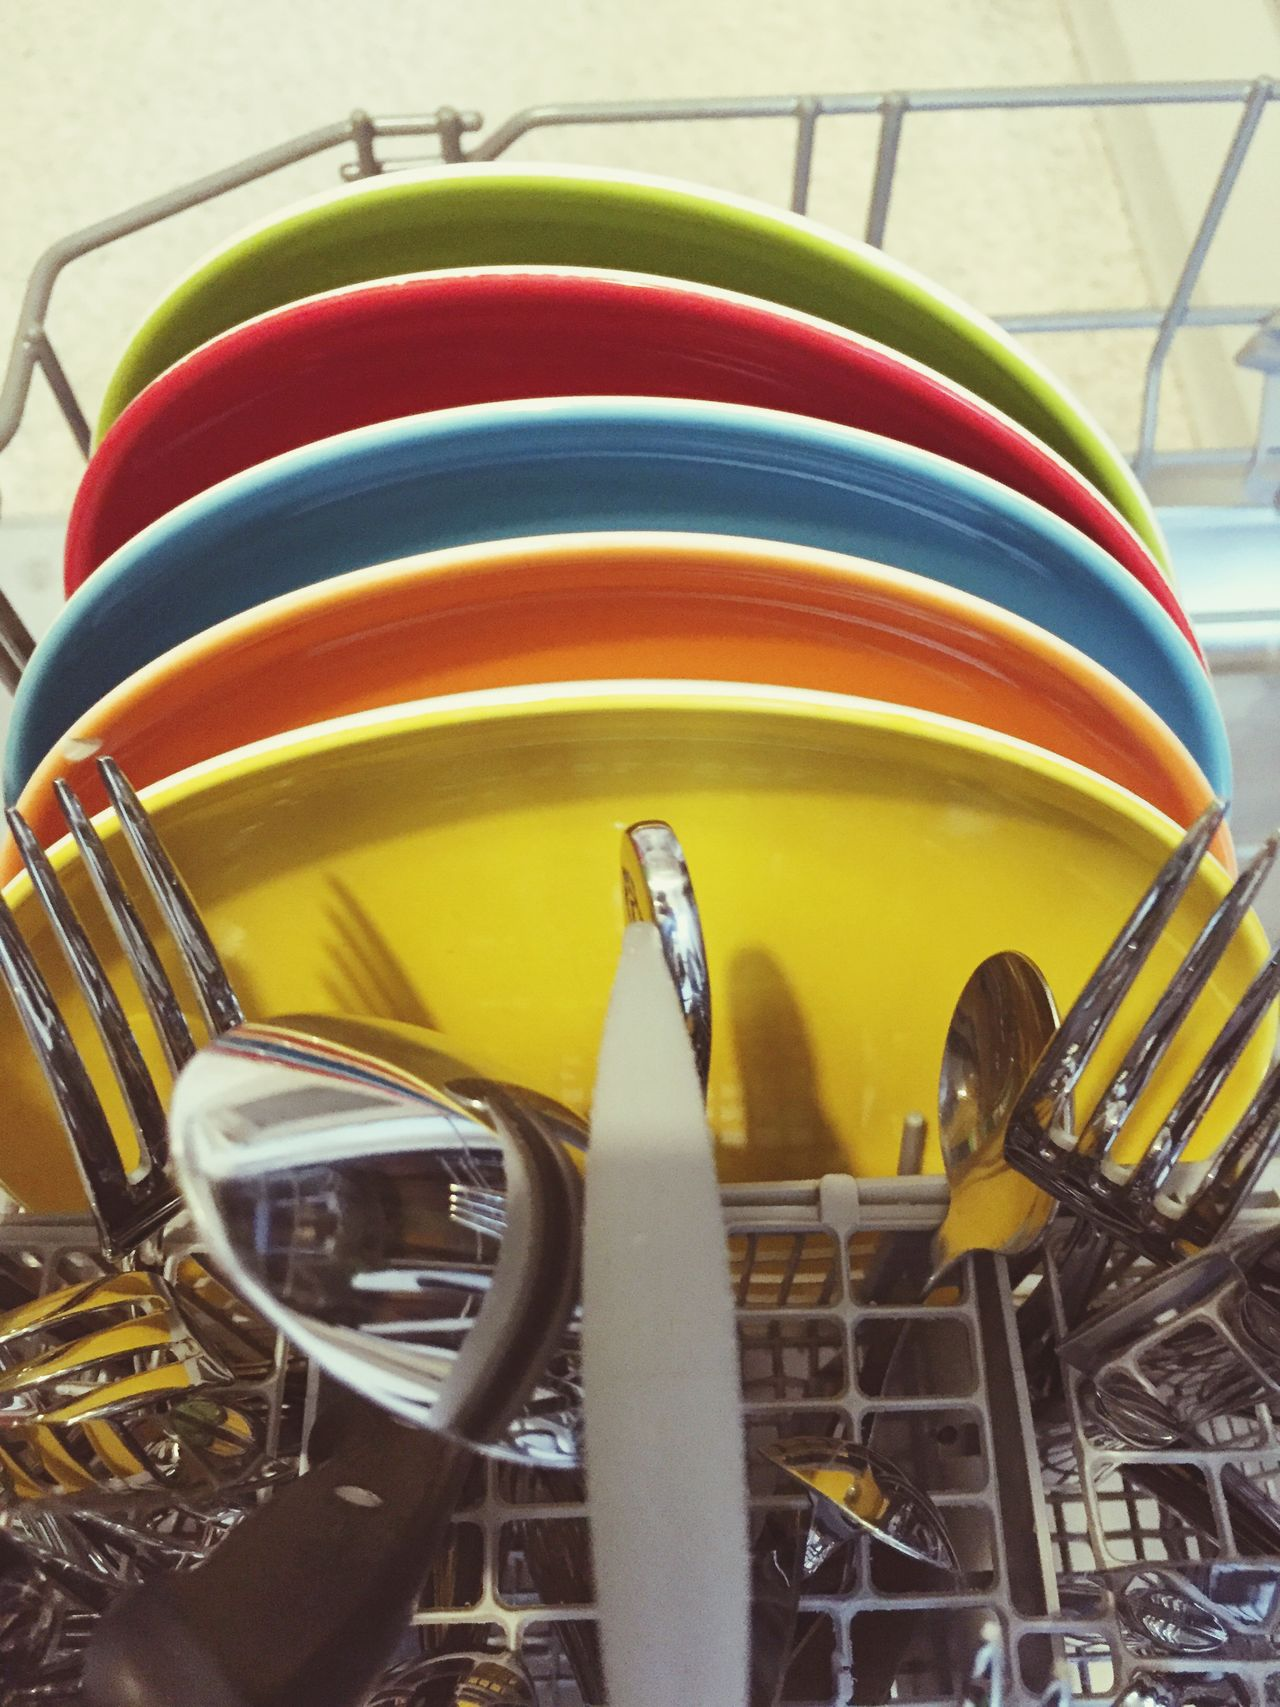 Dishwasher Dishwashing Plate Plates Color Colors Colorful Rainbow Rainbow Colors Beauty In Ordinary Things